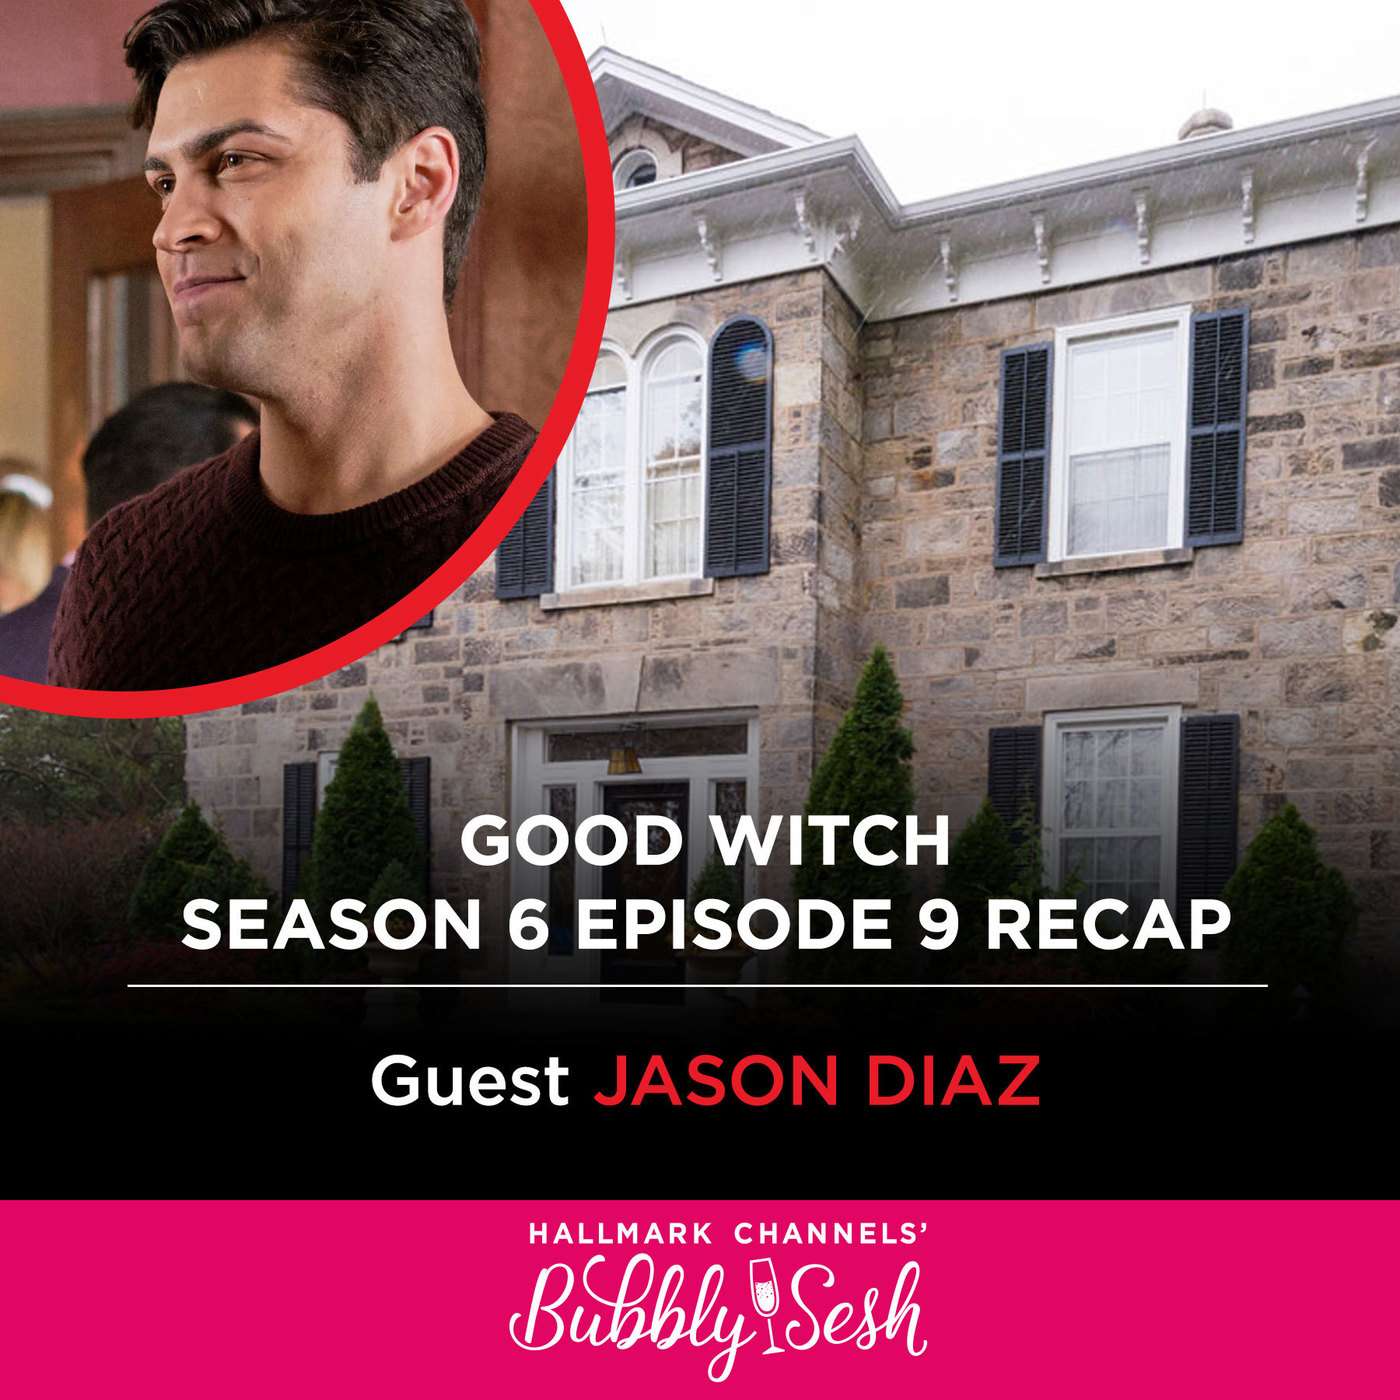 Good Witch Season 6 Episode 9 Recap with Guest Jason Diaz